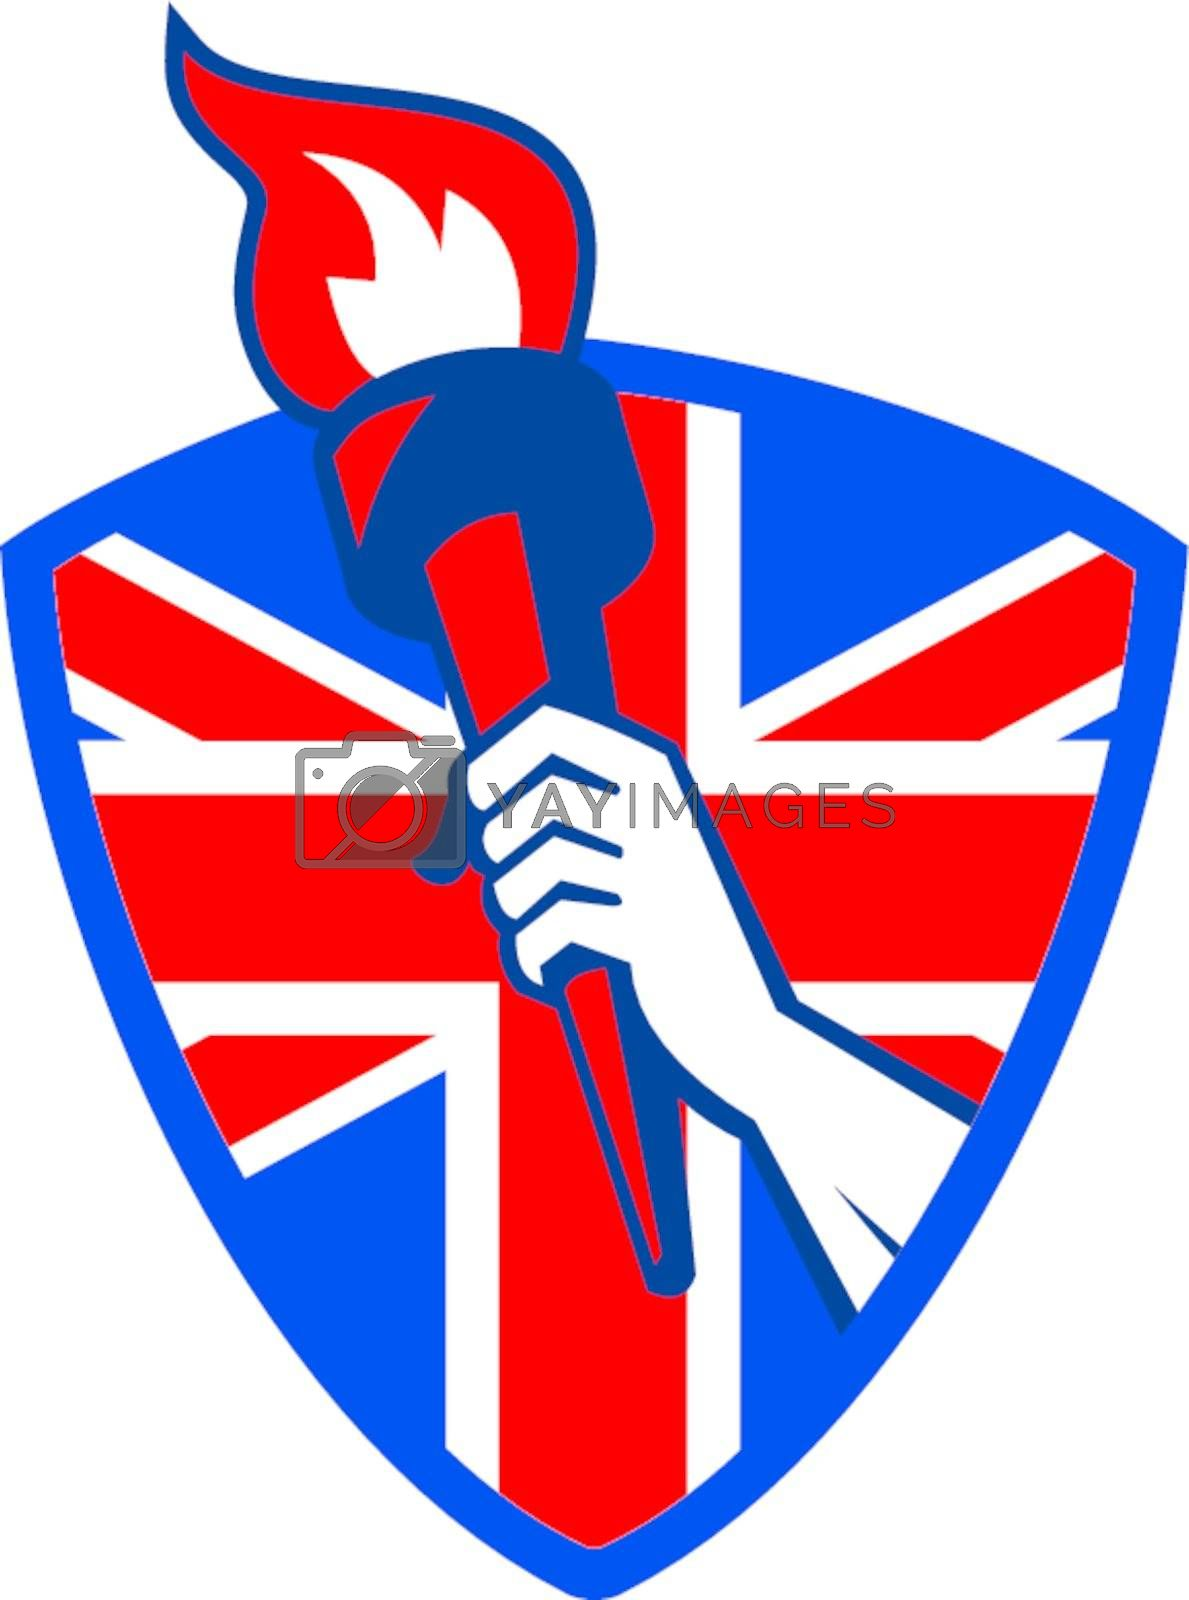 Retro illustration of an athlete hand holding a flaming torch with union jack Great Britain British flag set inside shield on isolated white background.